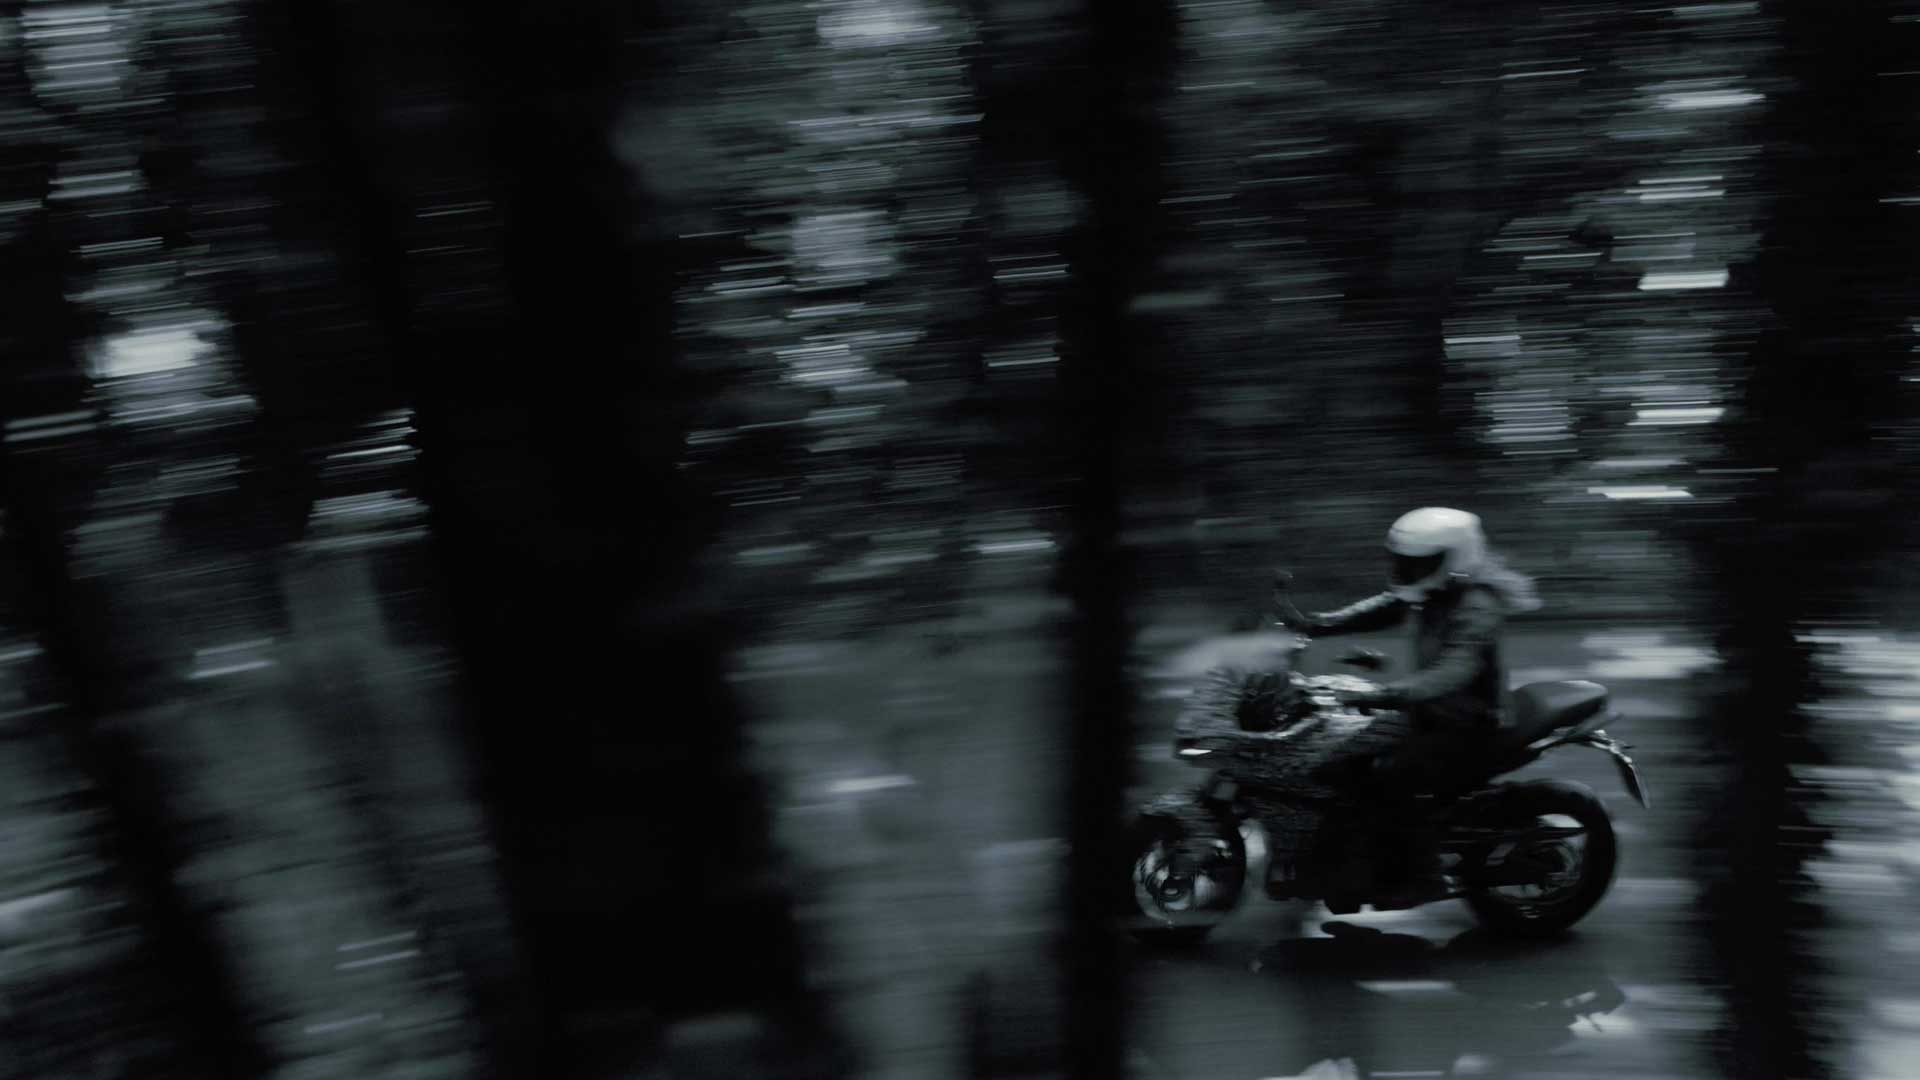 A blurry view of the new Triumph Tiger prototype, features in a Triumph Tiger Tease release from the UK company.